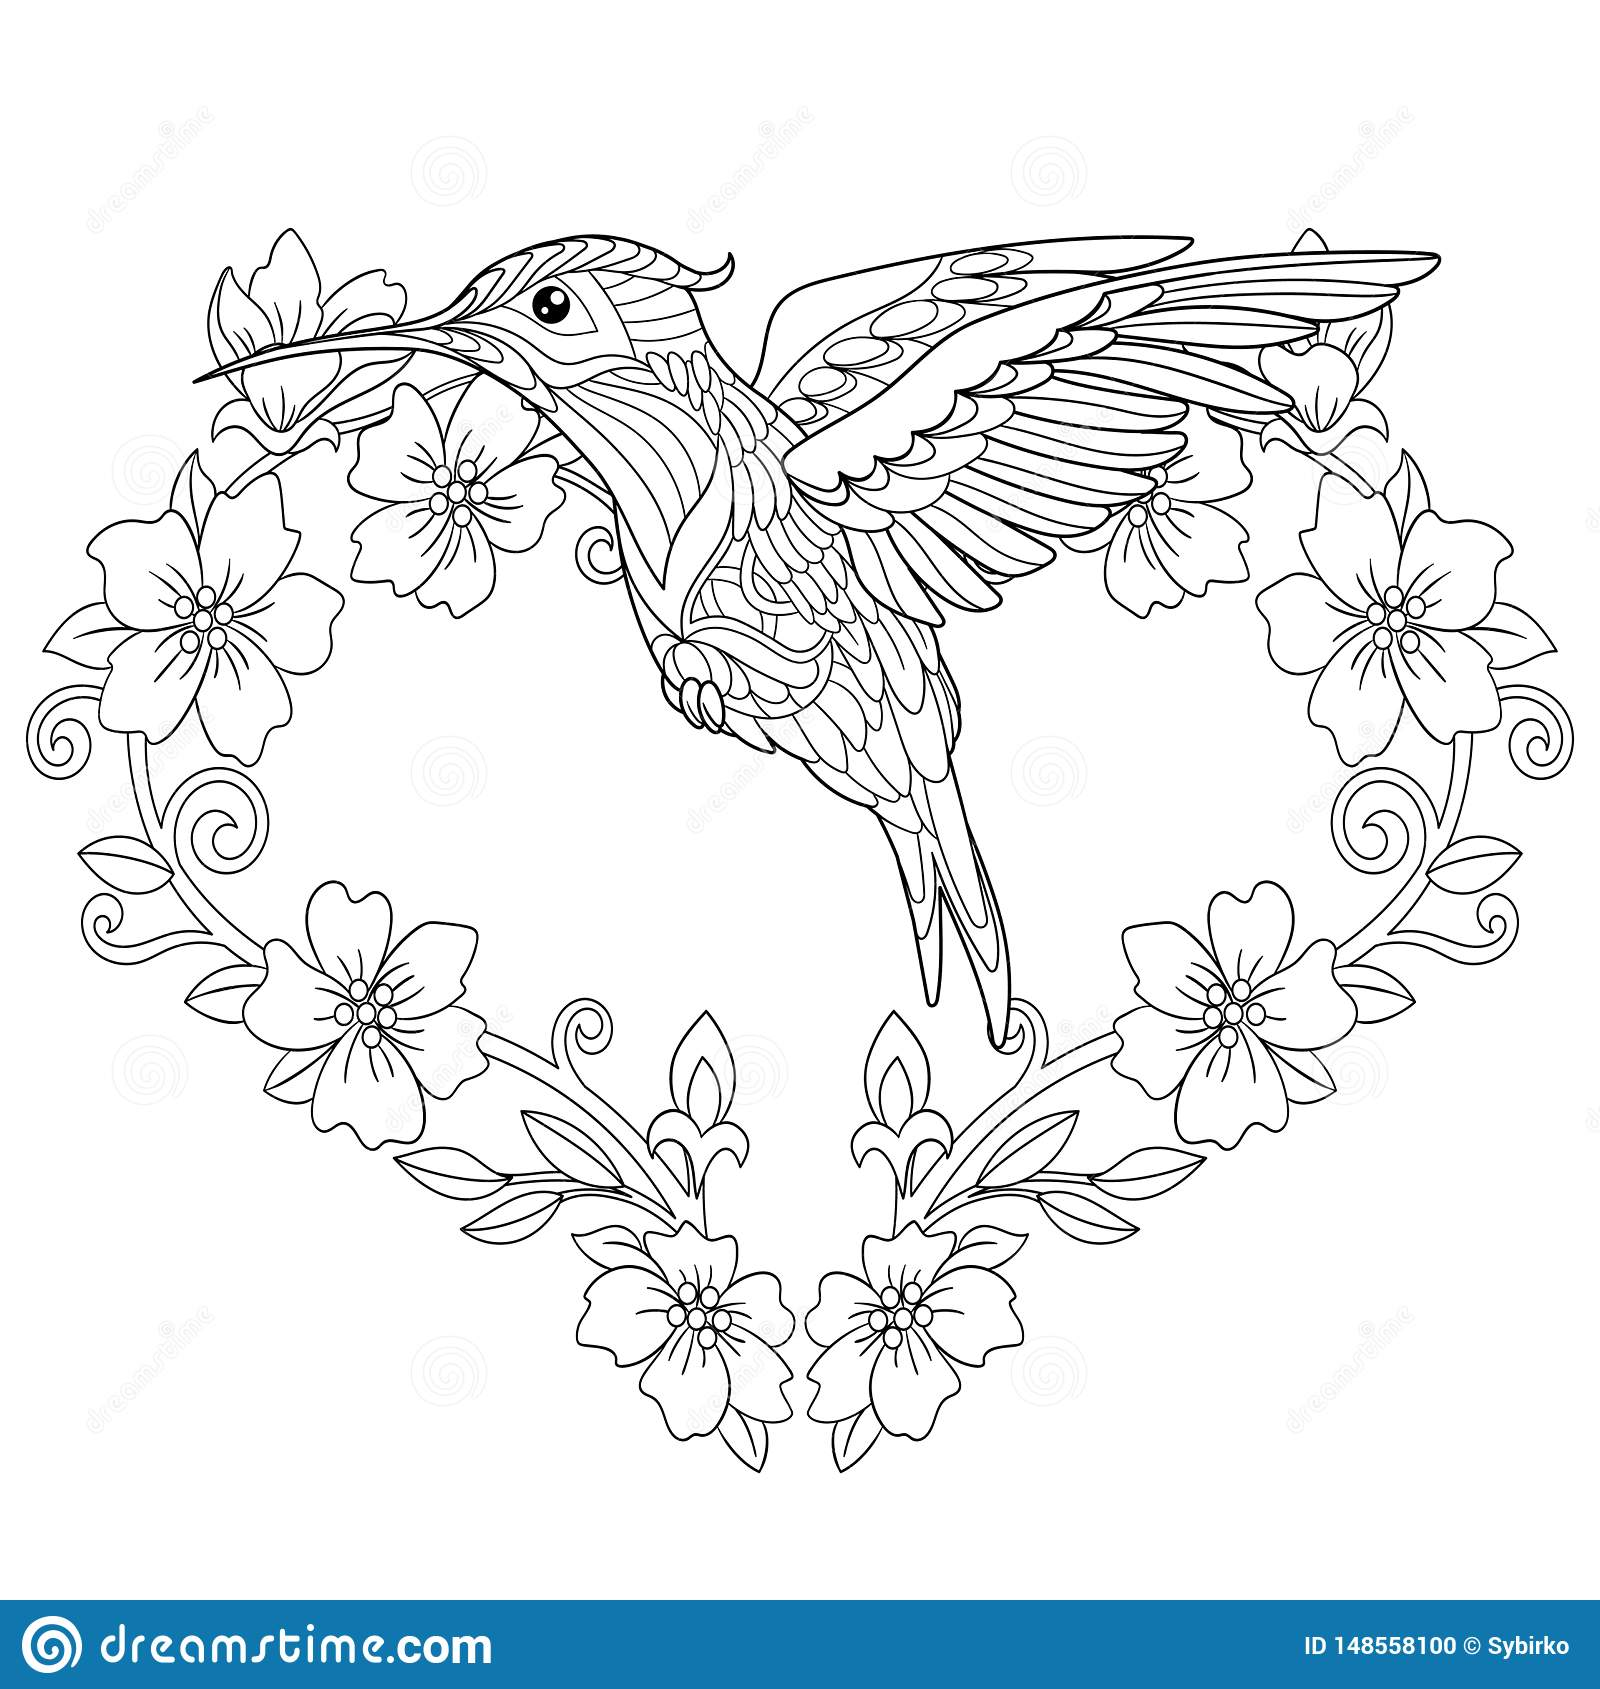 Free Heart Shape Coloring Page, Download Free Clip Art, Free Clip ... | 1689x1600